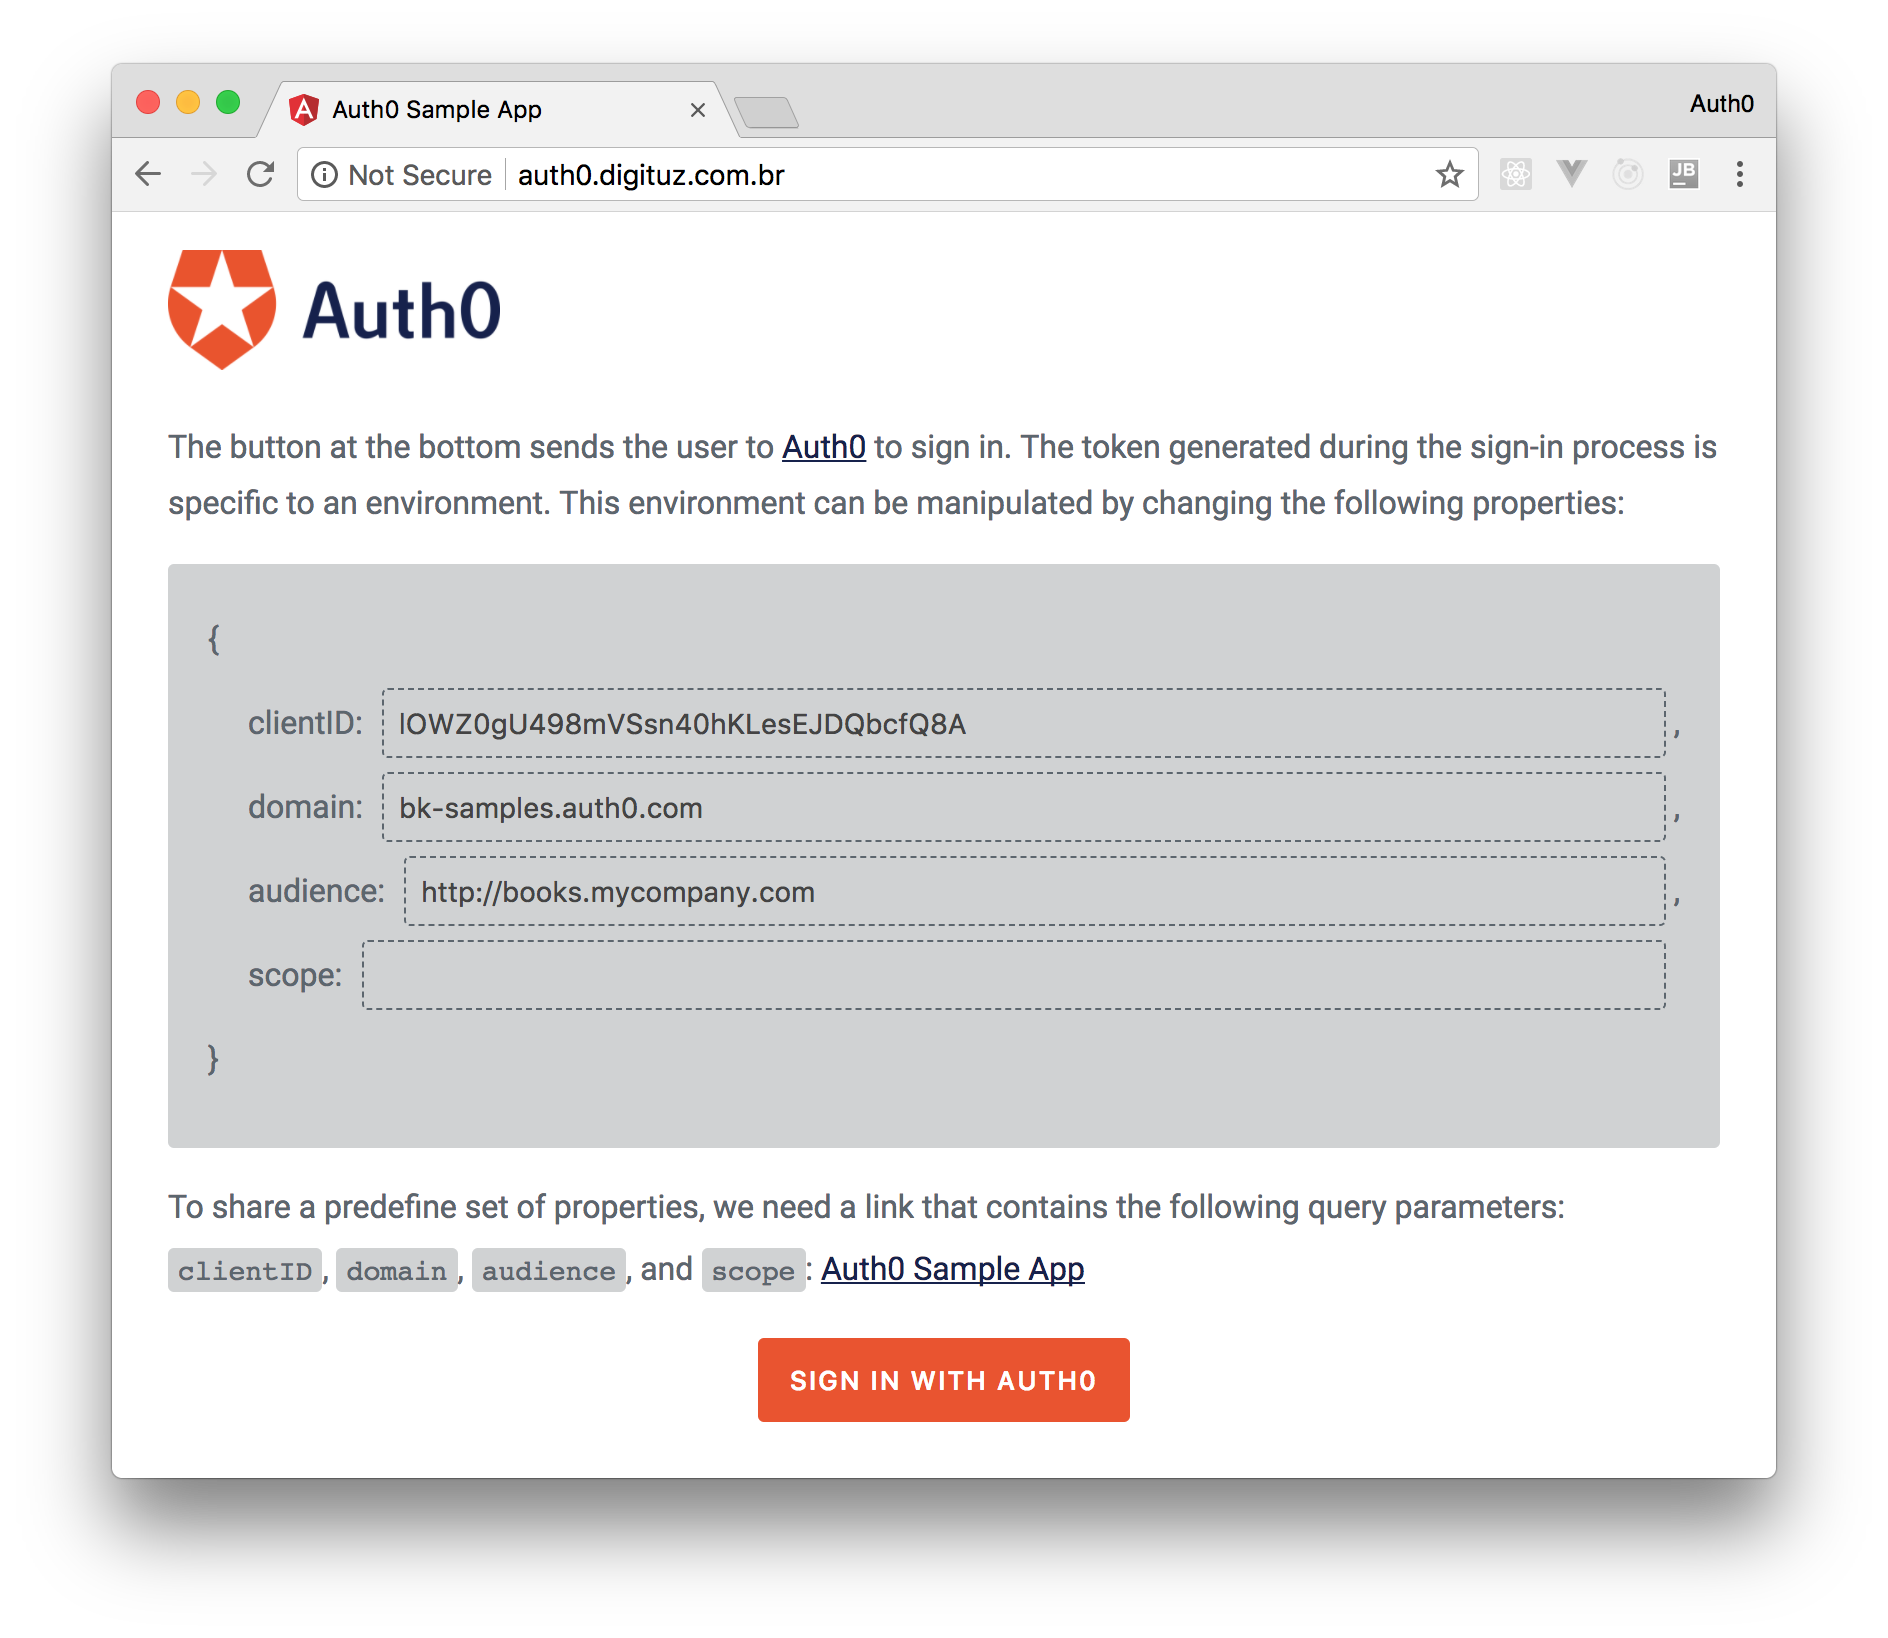 Testing integration with Auth0